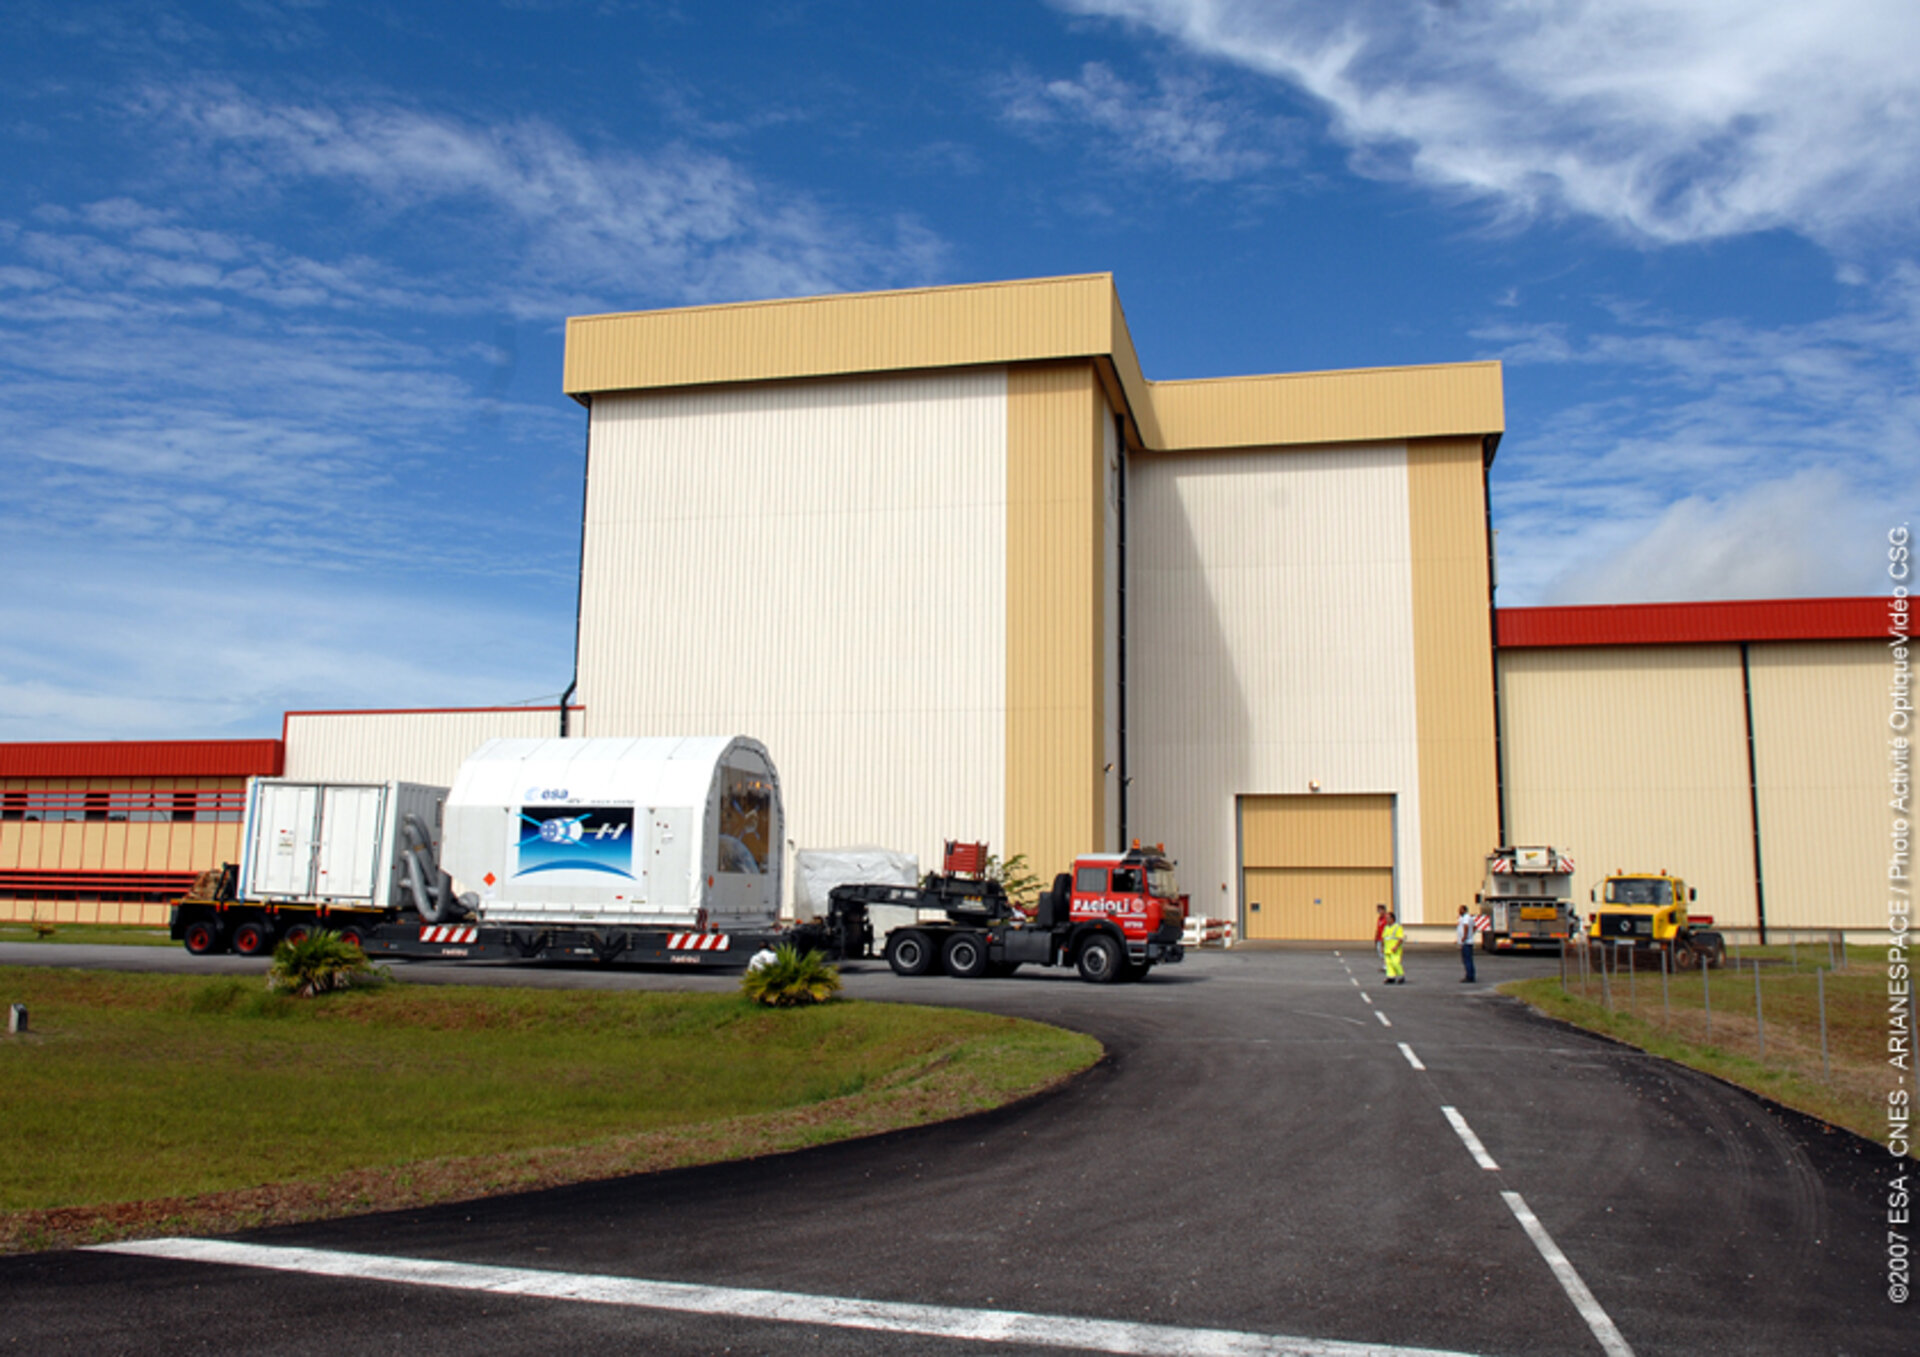 ATV arrives at the S5 building at Europe's Spaceport in Kourou, French Guiana